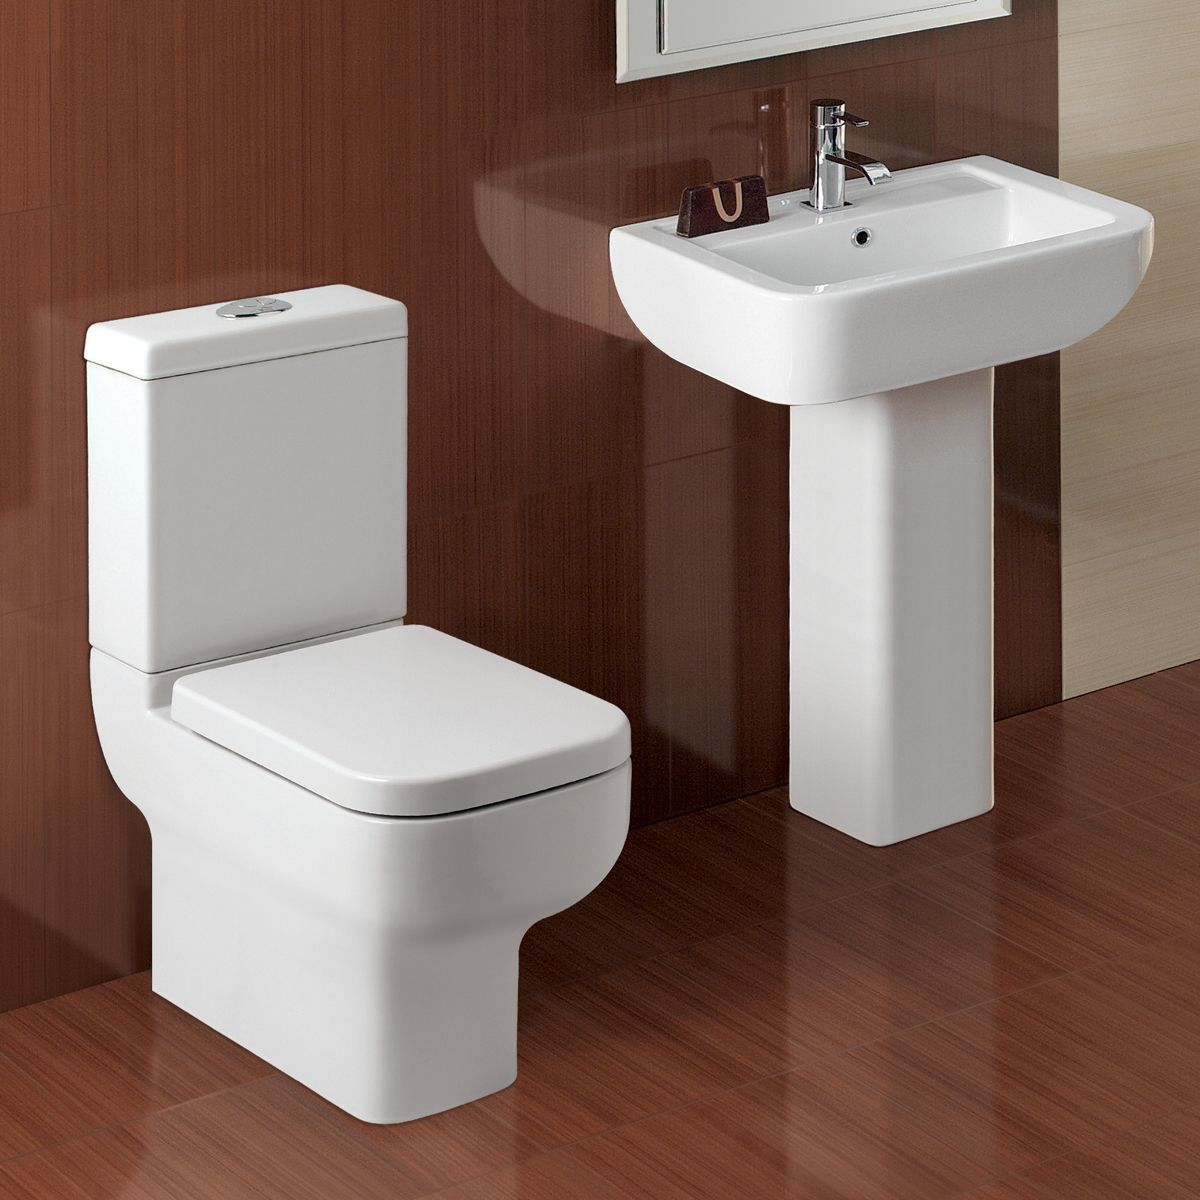 Kartell K-VIT Options 600 Comfort Height Toilet with Soft Close Seat 3